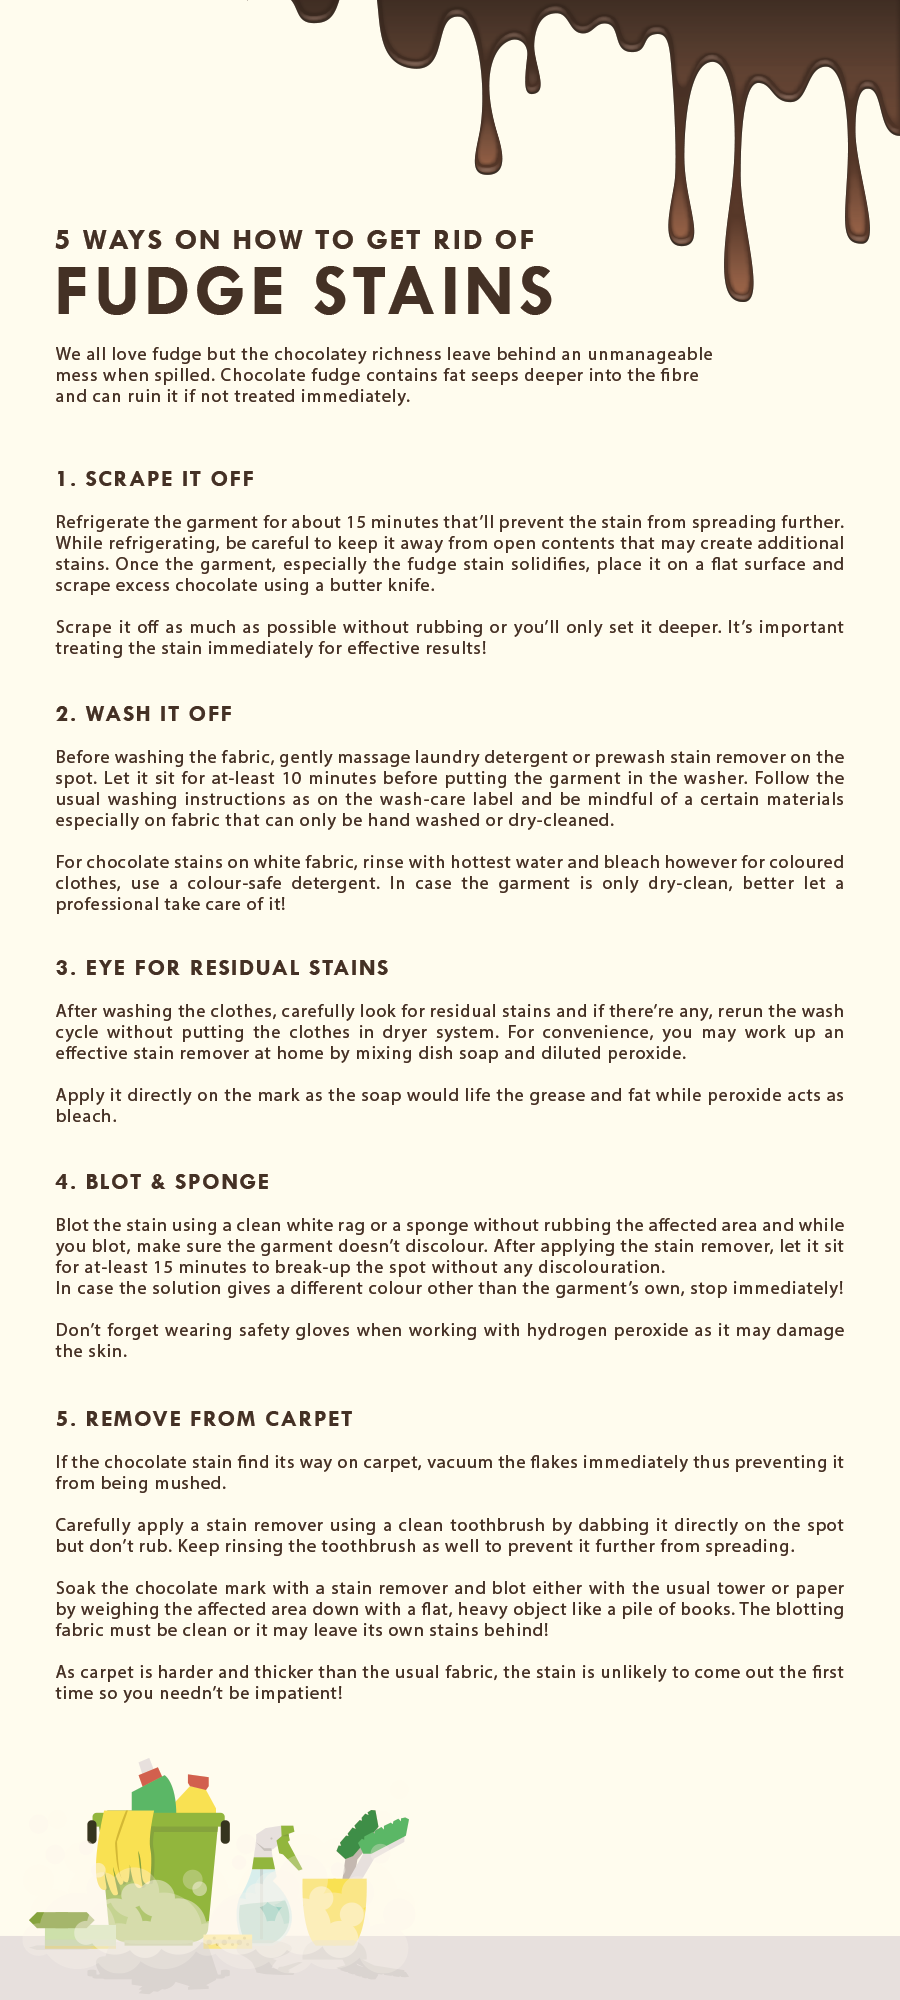 get rid of fudge stains infographics